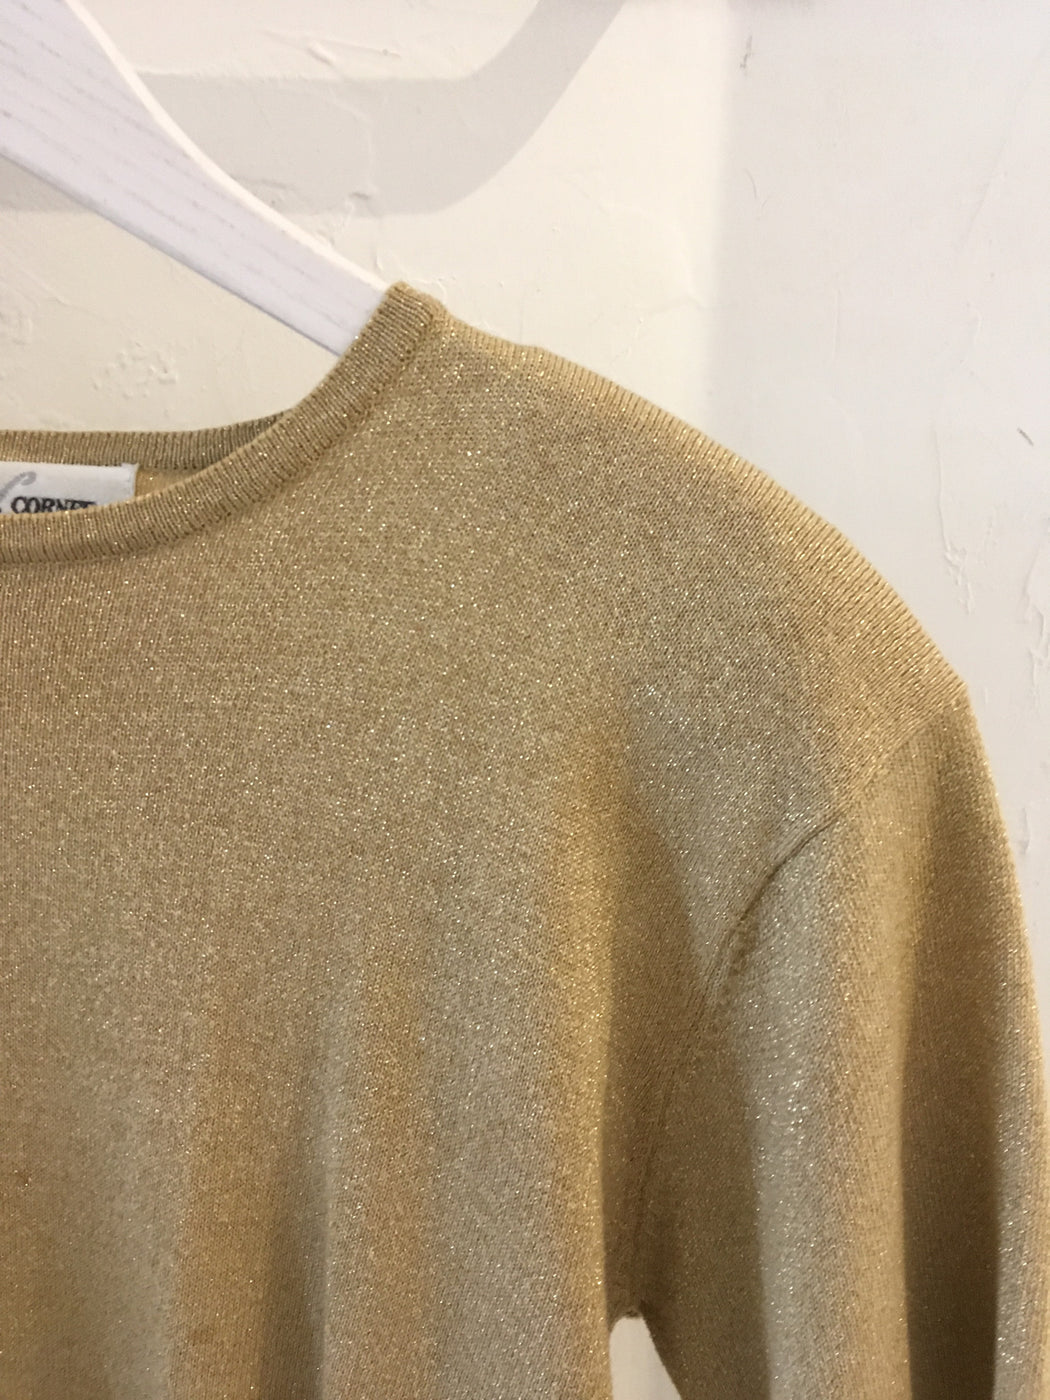 90s Sparkly Gold Sweater - Size M, Gingerly Witty - Gingerly Witty